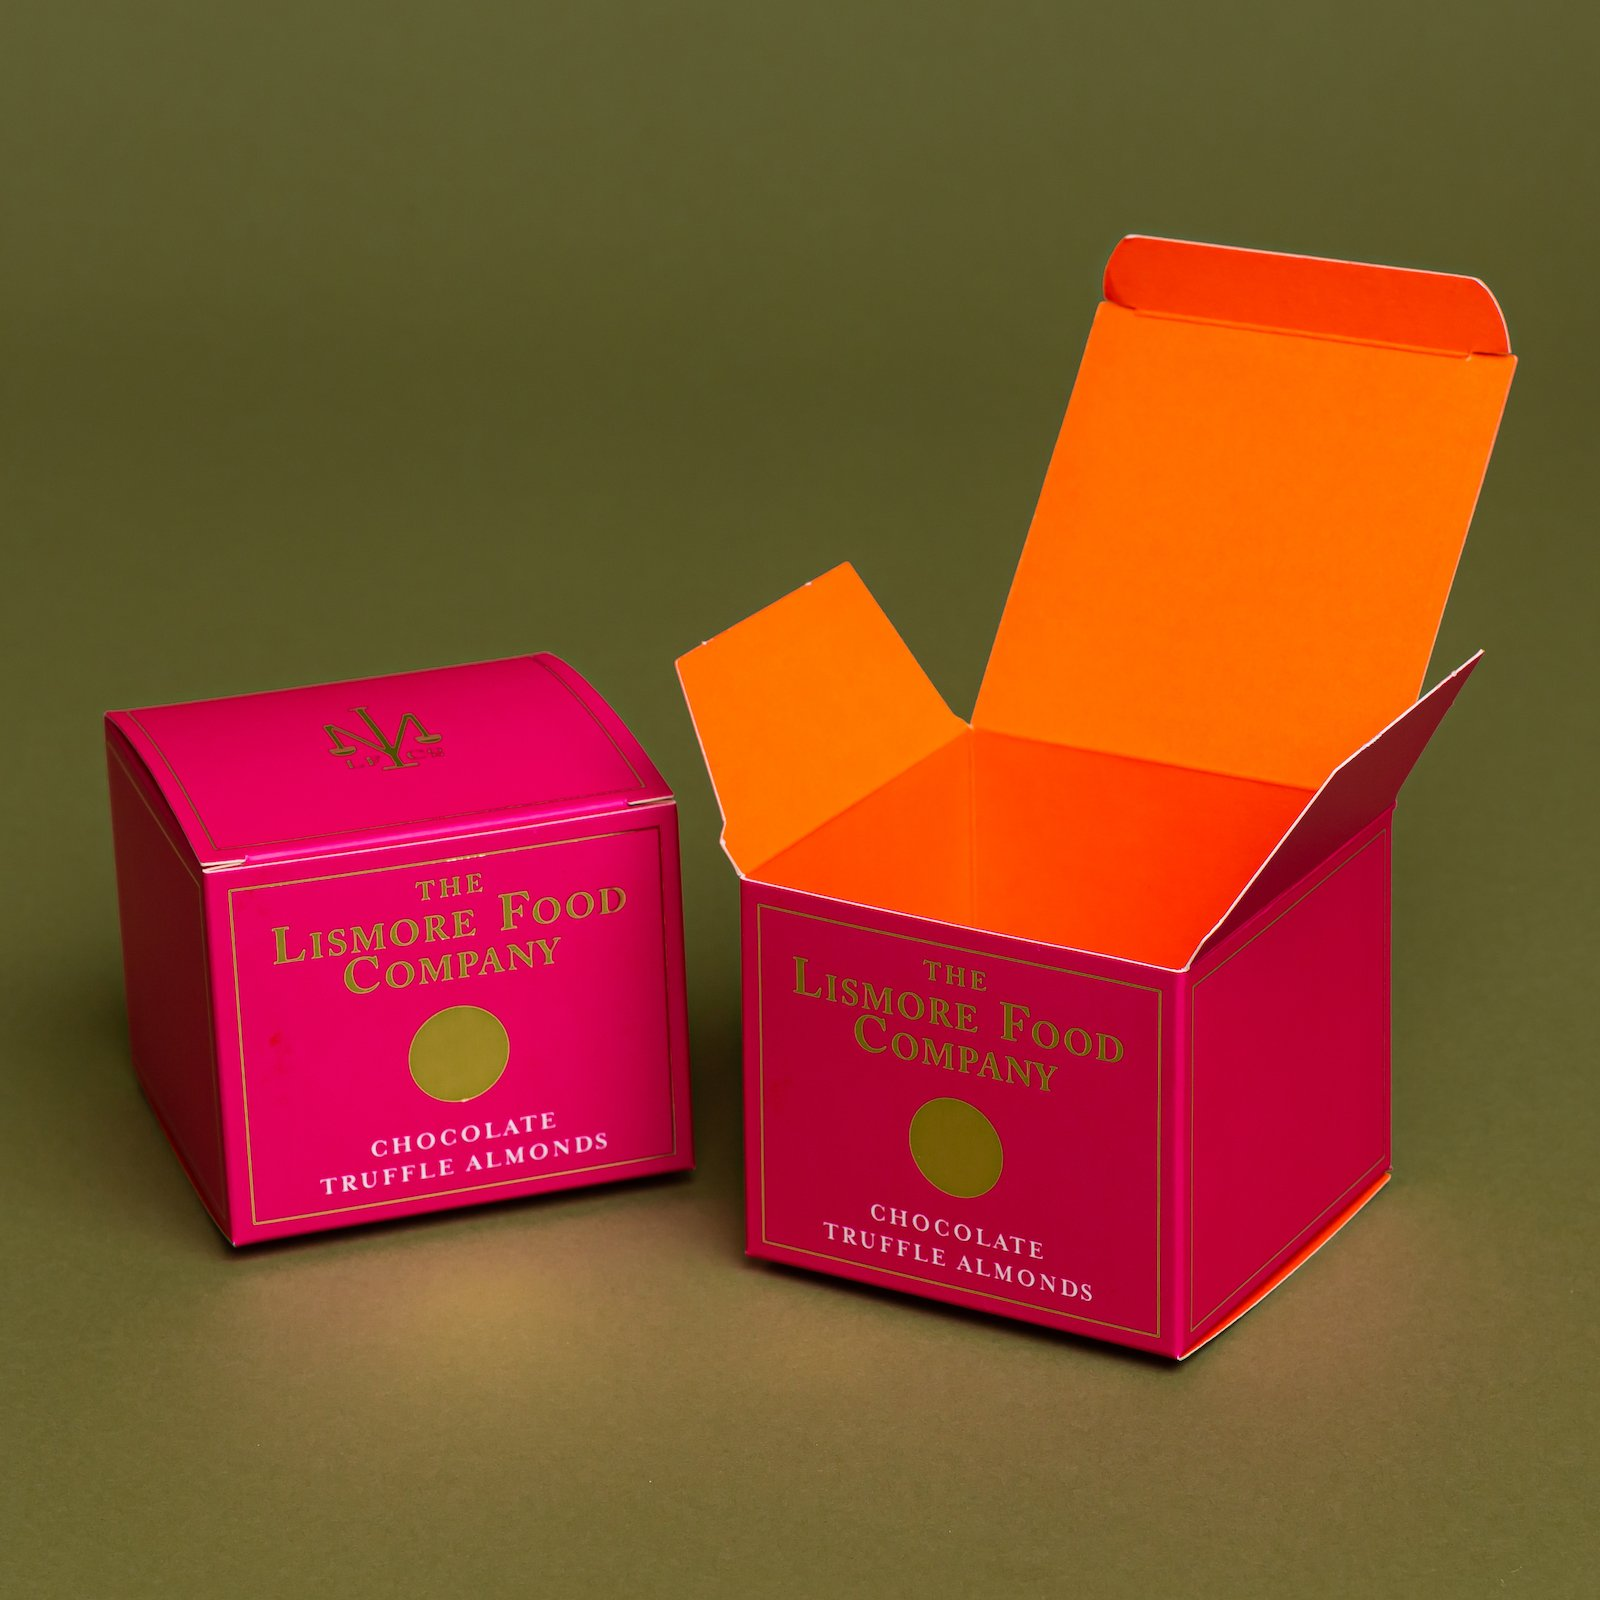 Custom Printed Product Boxes